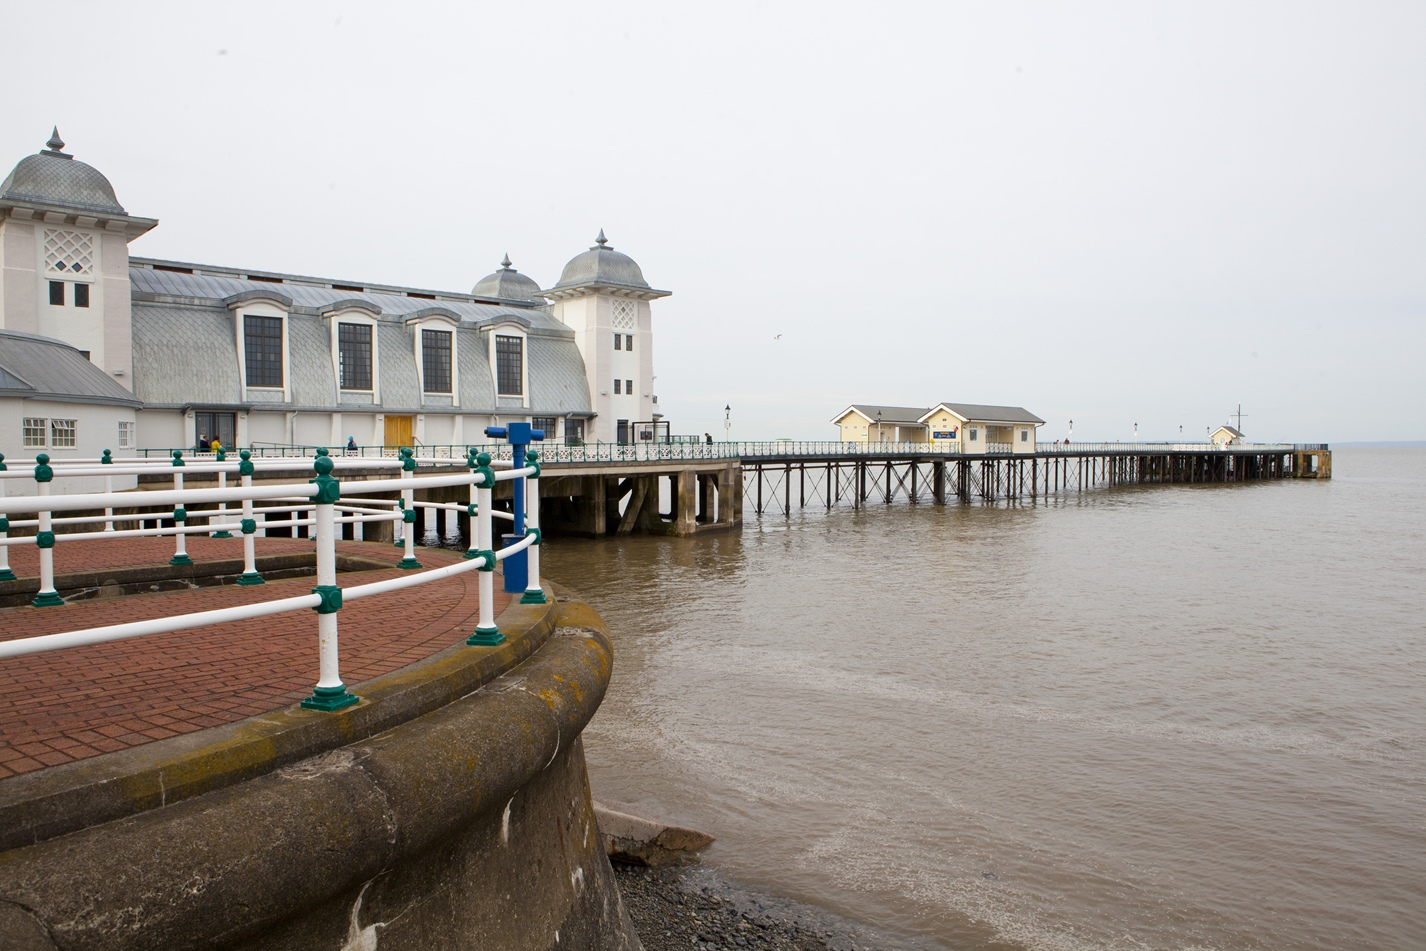 In Penarth, with views